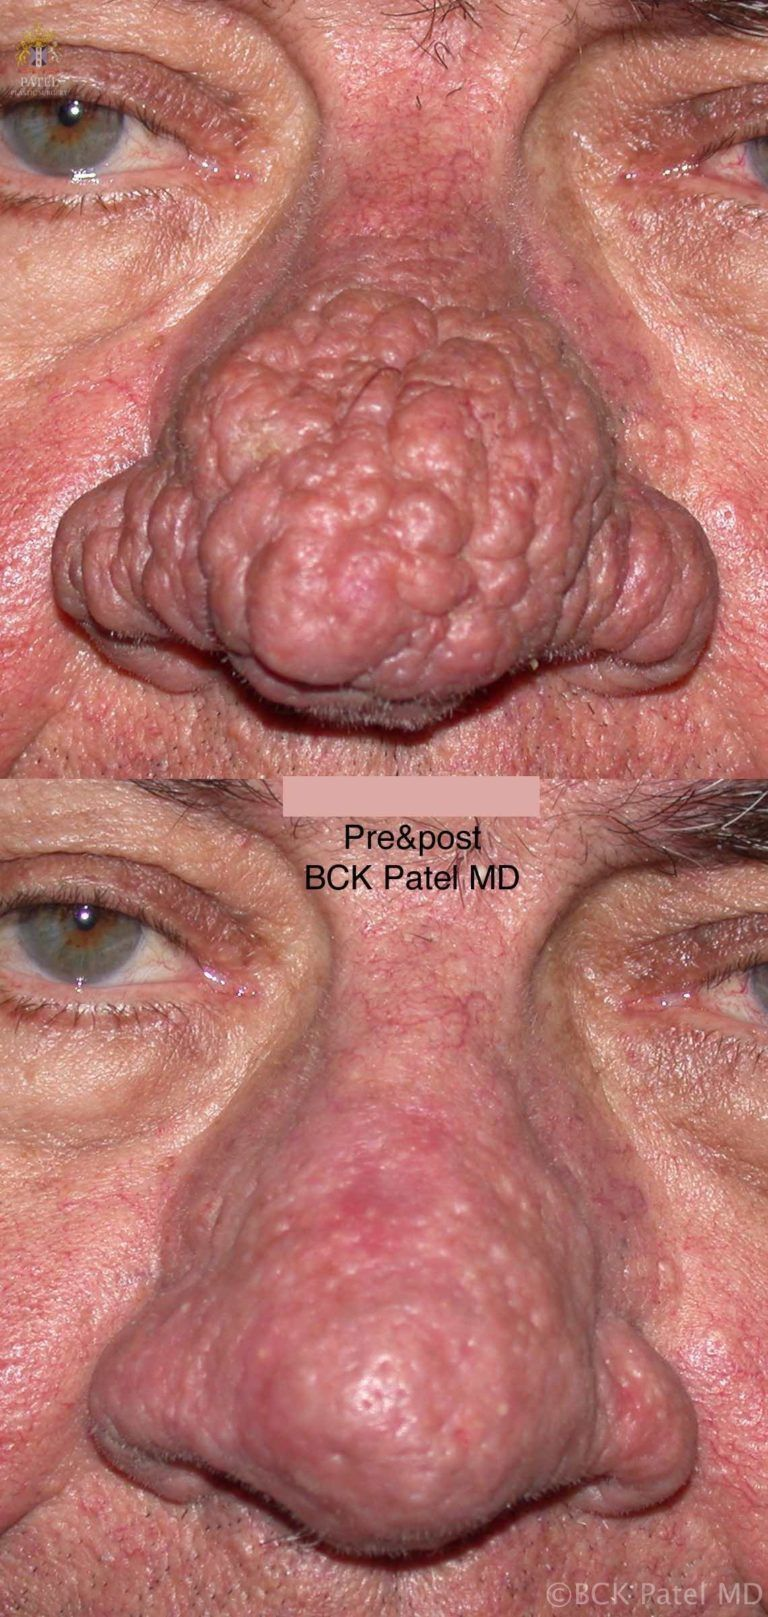 Treatment of severe rhinophyma with multiple lasers including the CO2 laser, fotofacial laser by Dr. BCK Patel of Salt Lake City